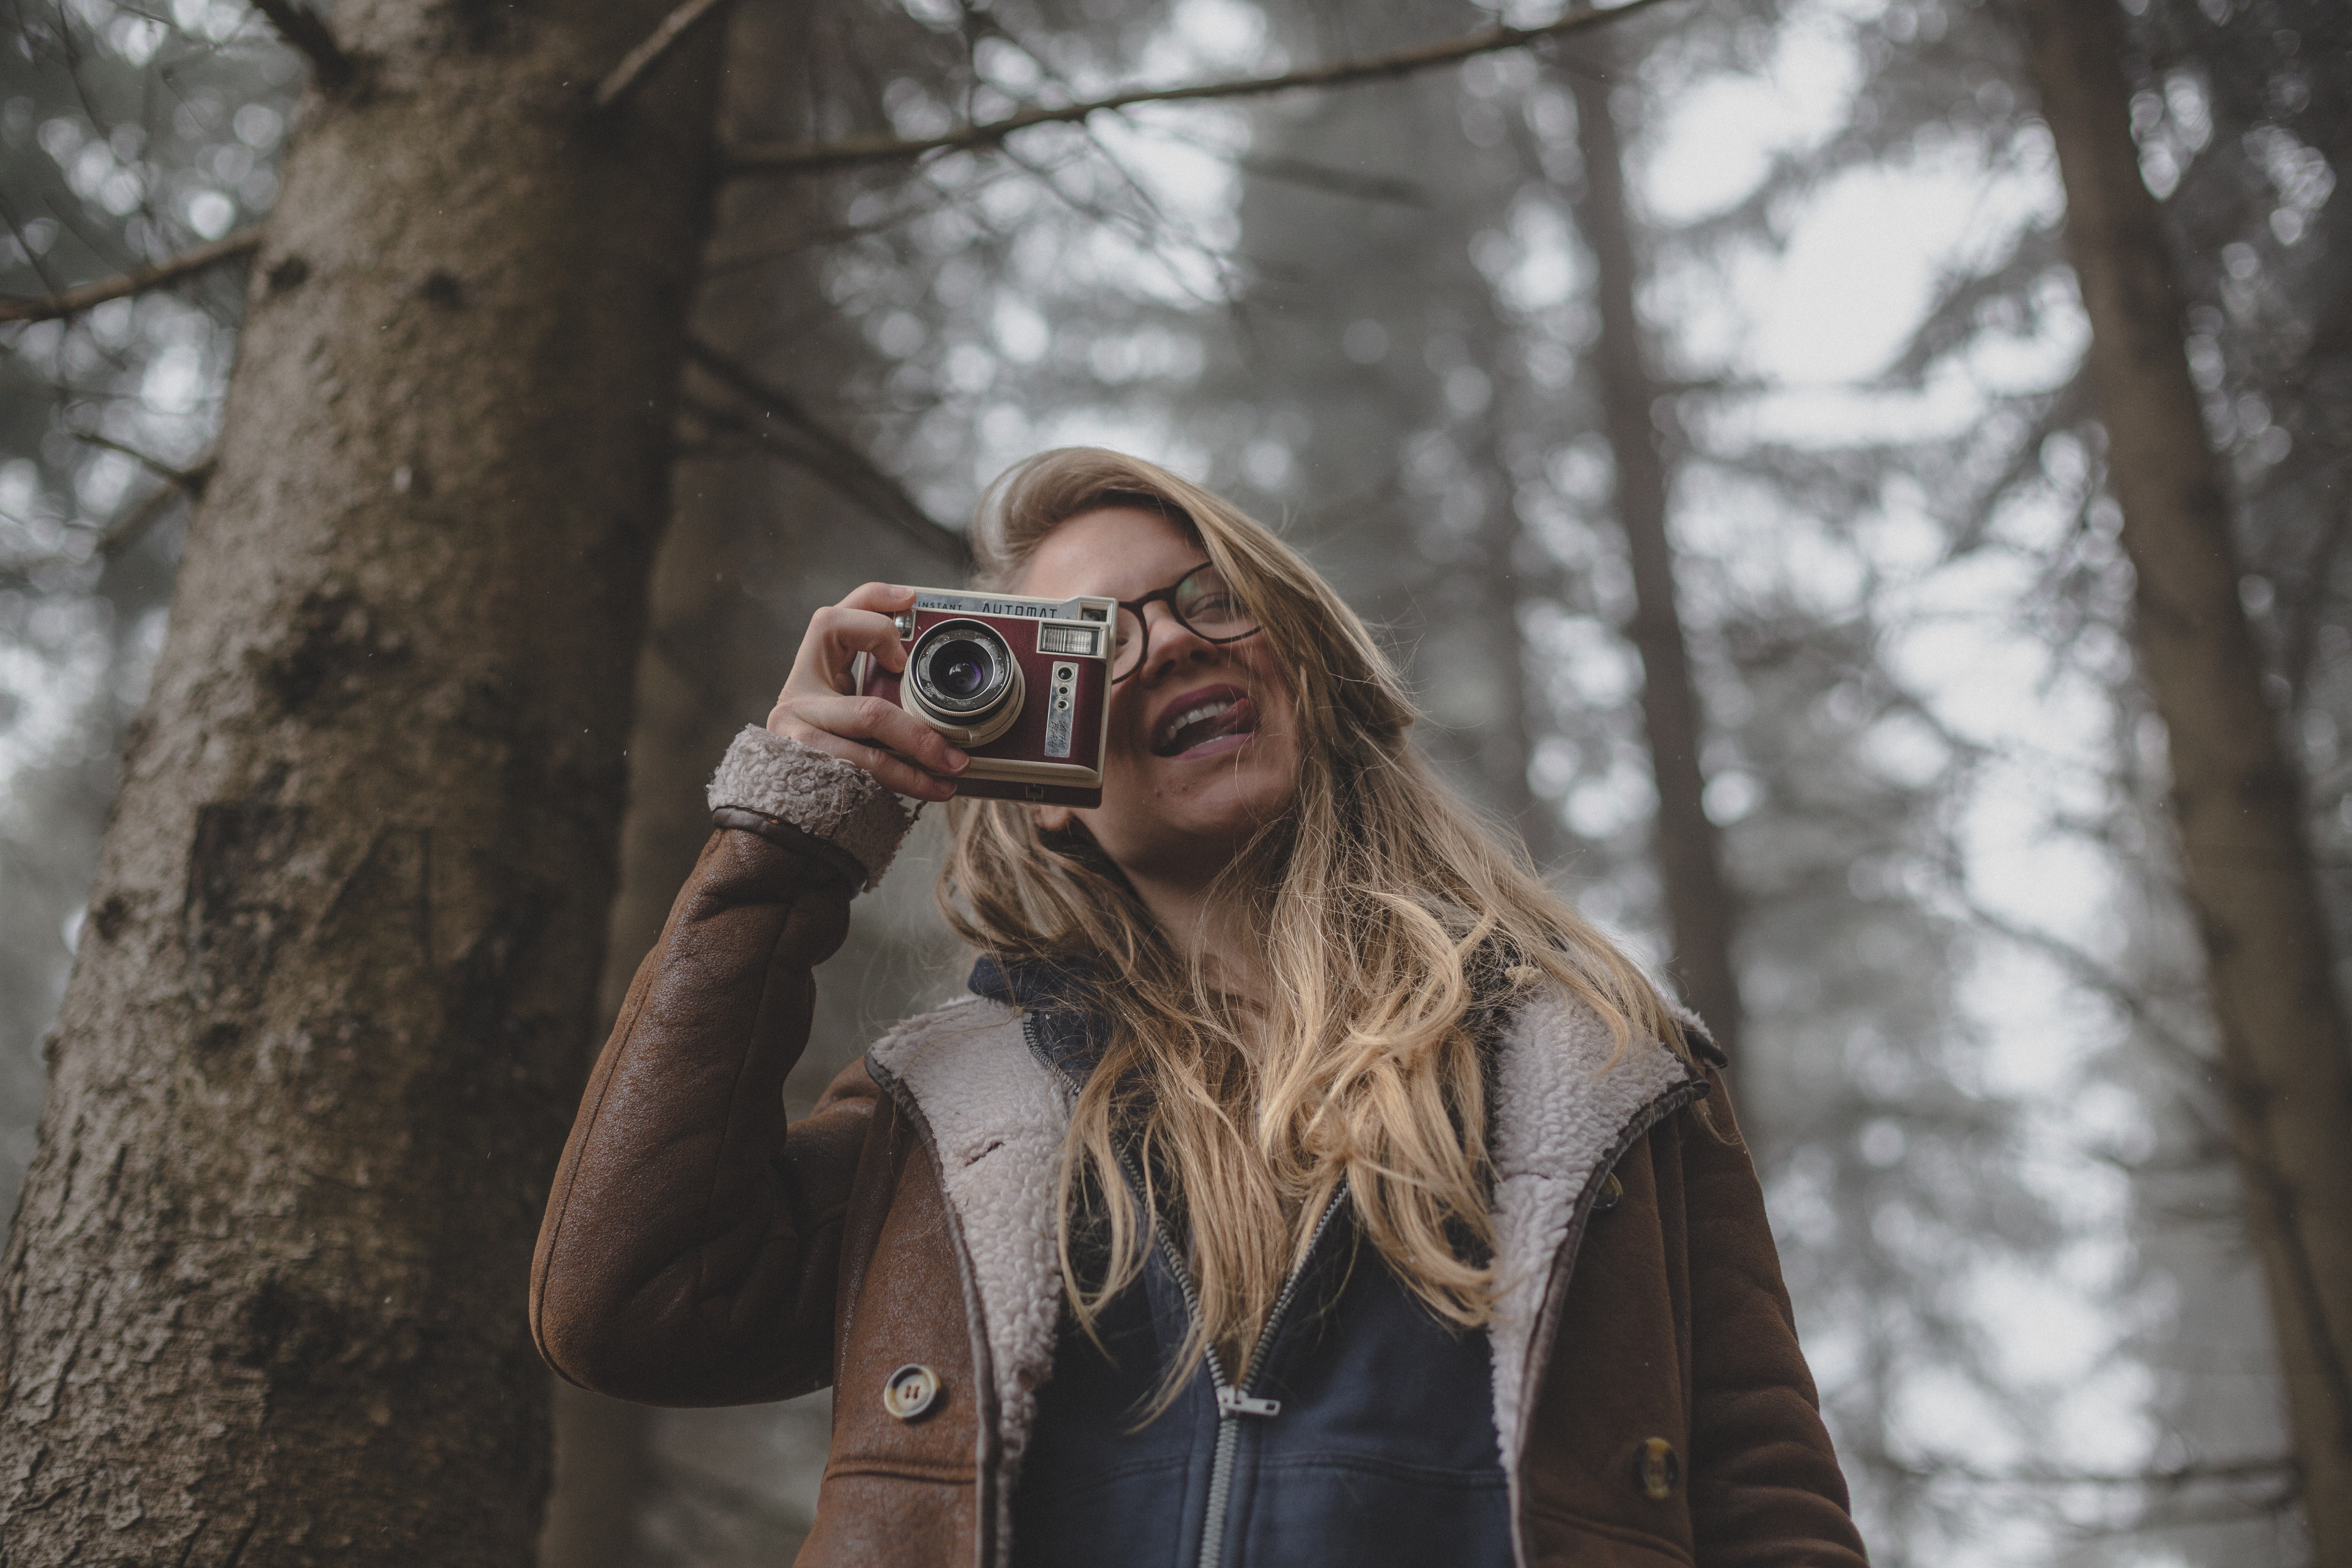 Smiling woman in glasses and coat takes a photo in a forest